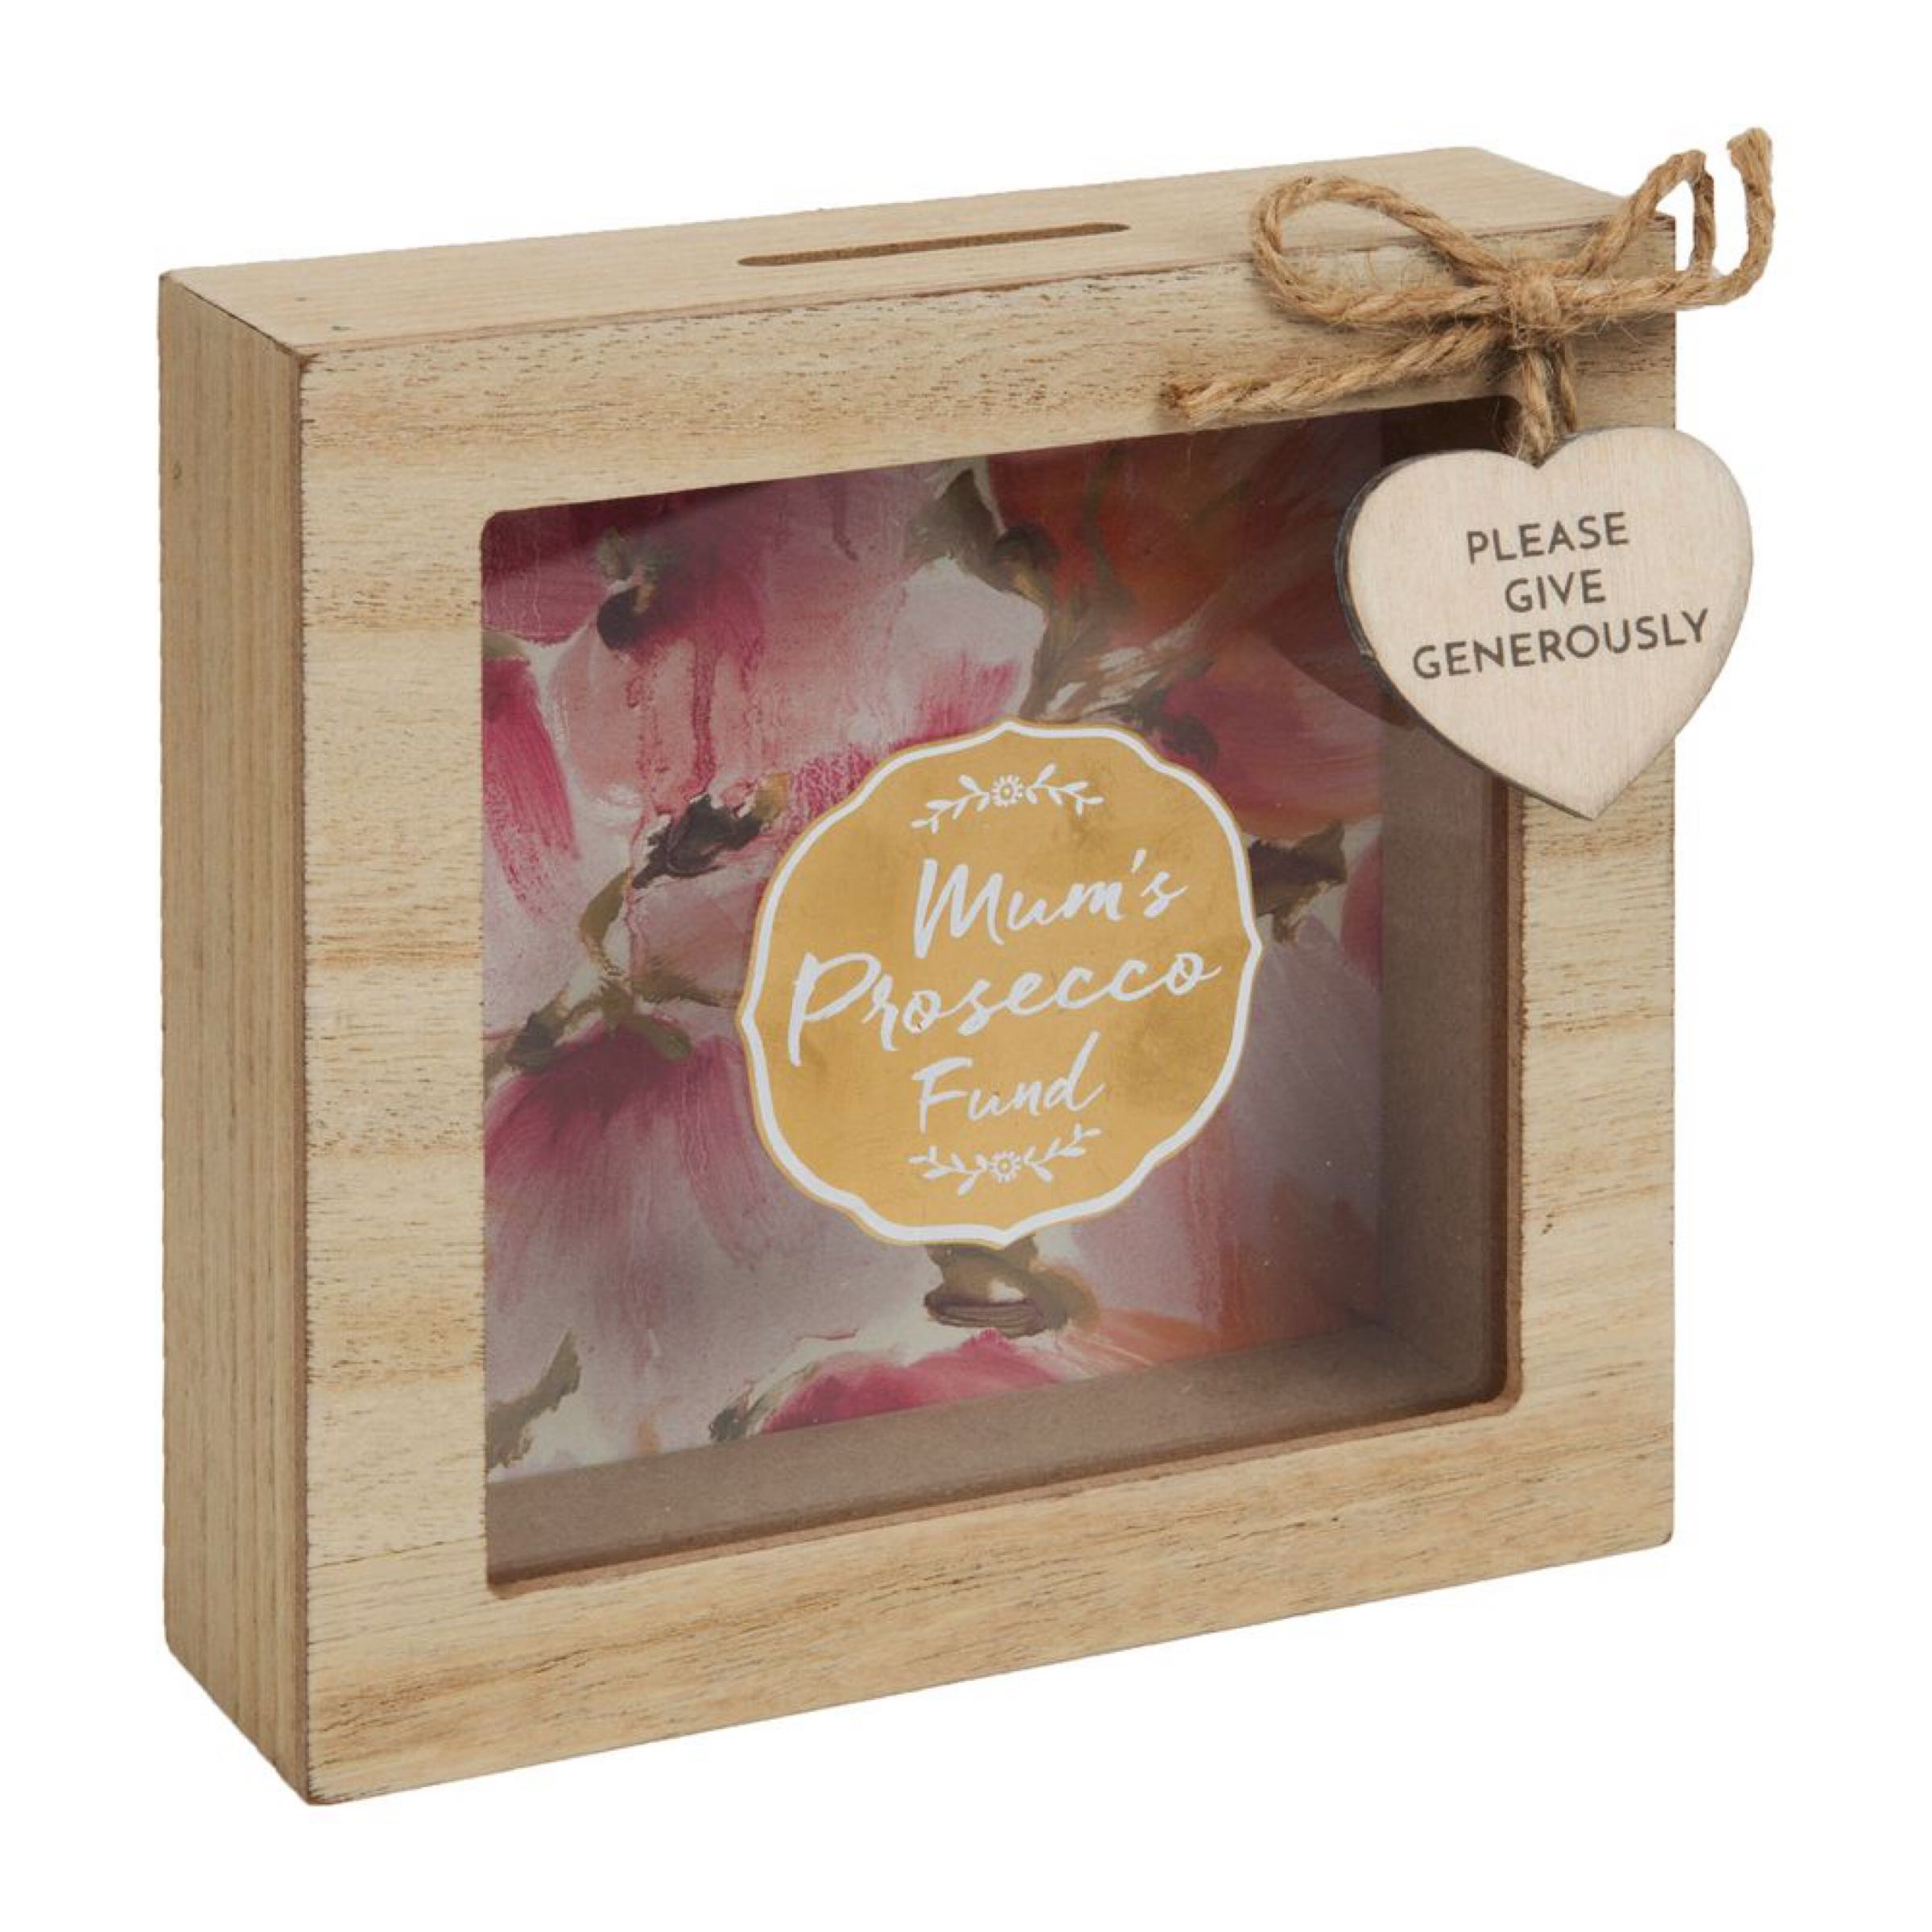 Mum's Prosecco Fund  Wooden Money Box